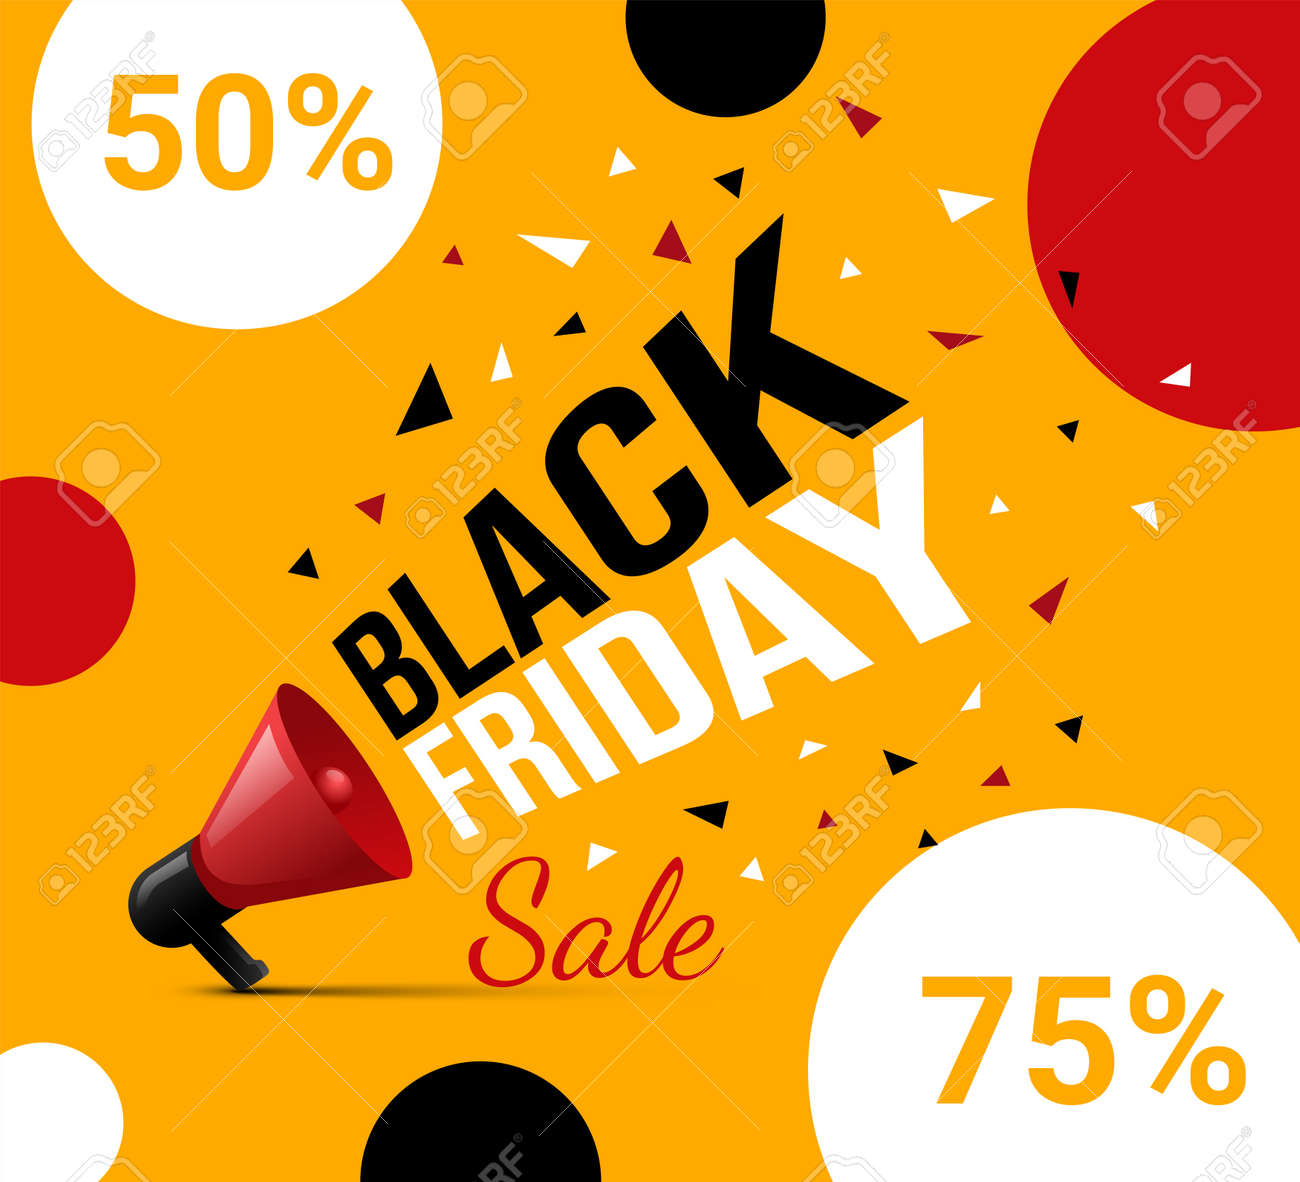 Bright and colorful Black Friday advertisement flyer design with text. Red loudspeaker promotes seasonal sale. - 172534843